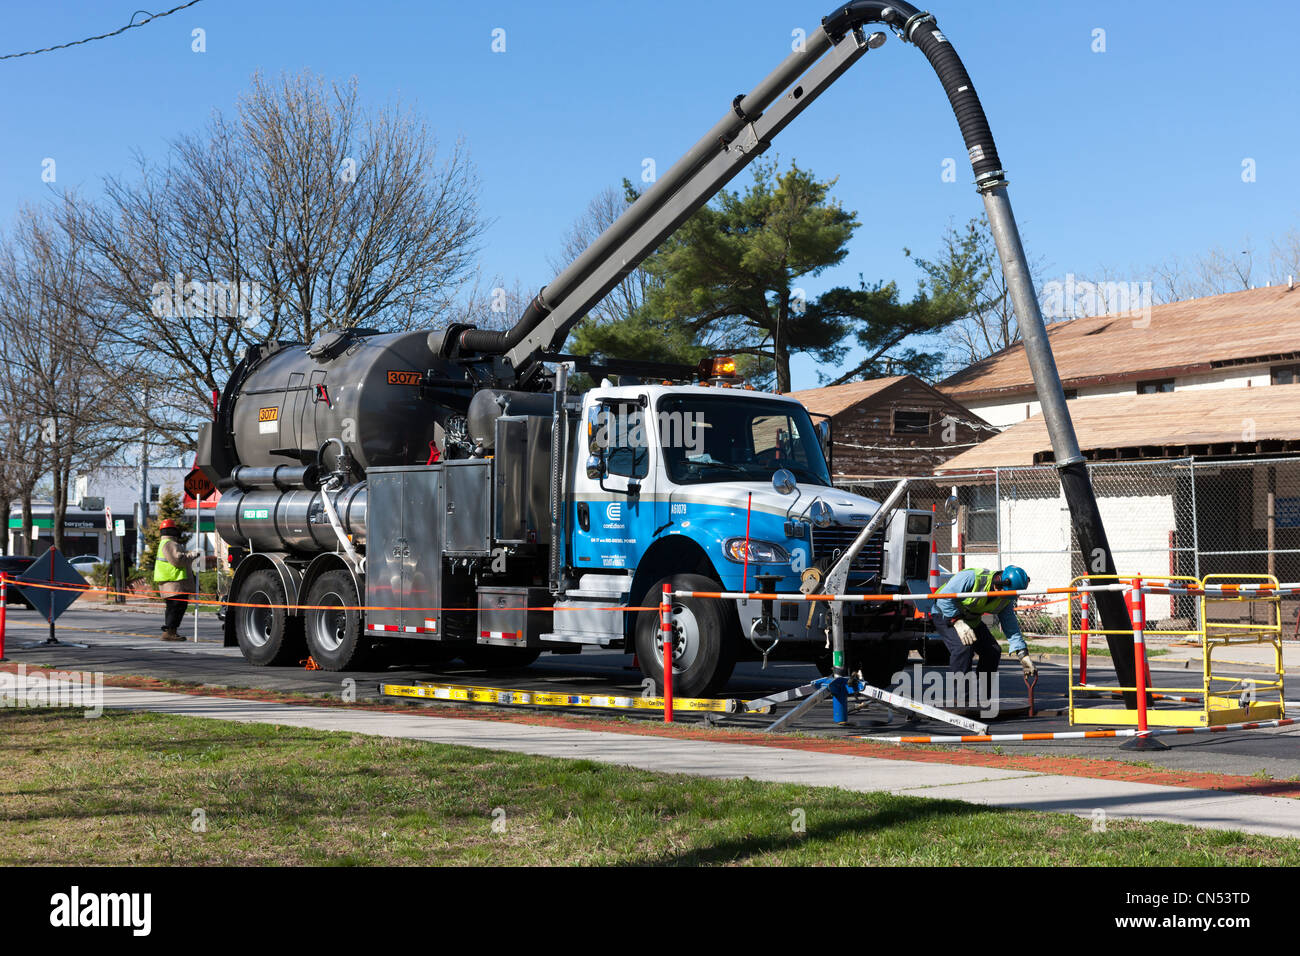 A Con Edison vacuum truck crew works on a street in White Plains, New York. - Stock Image